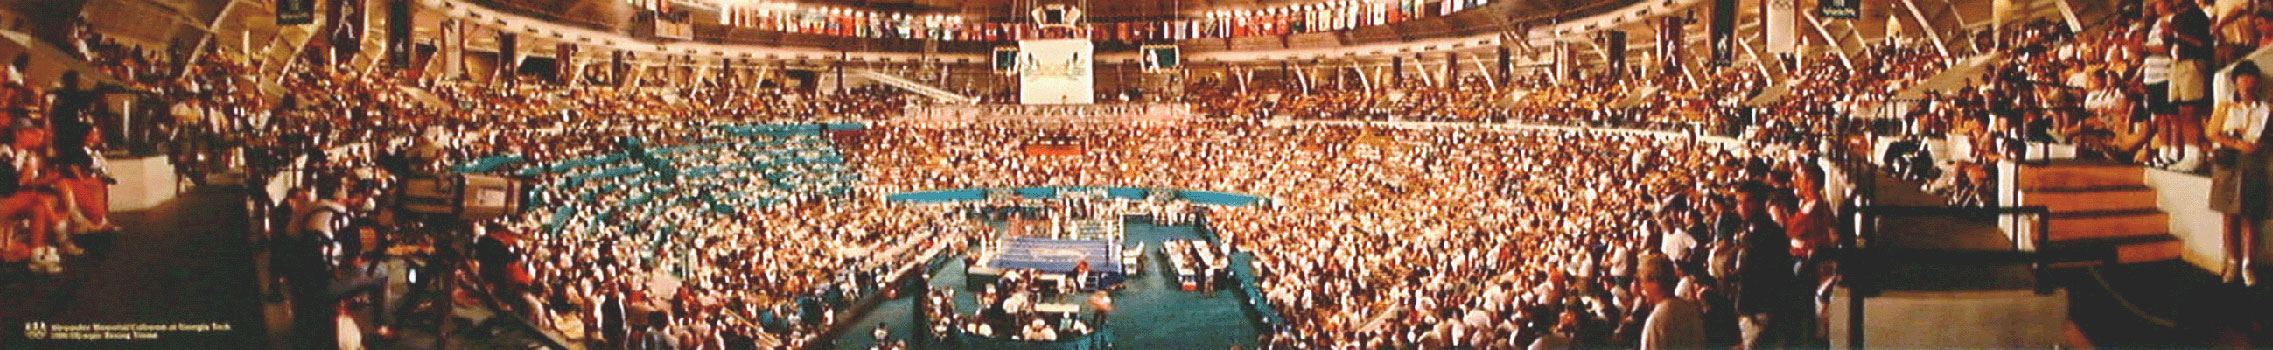 Alexander Memorial Coliseum, 1996 Olympic Boxing Panorama